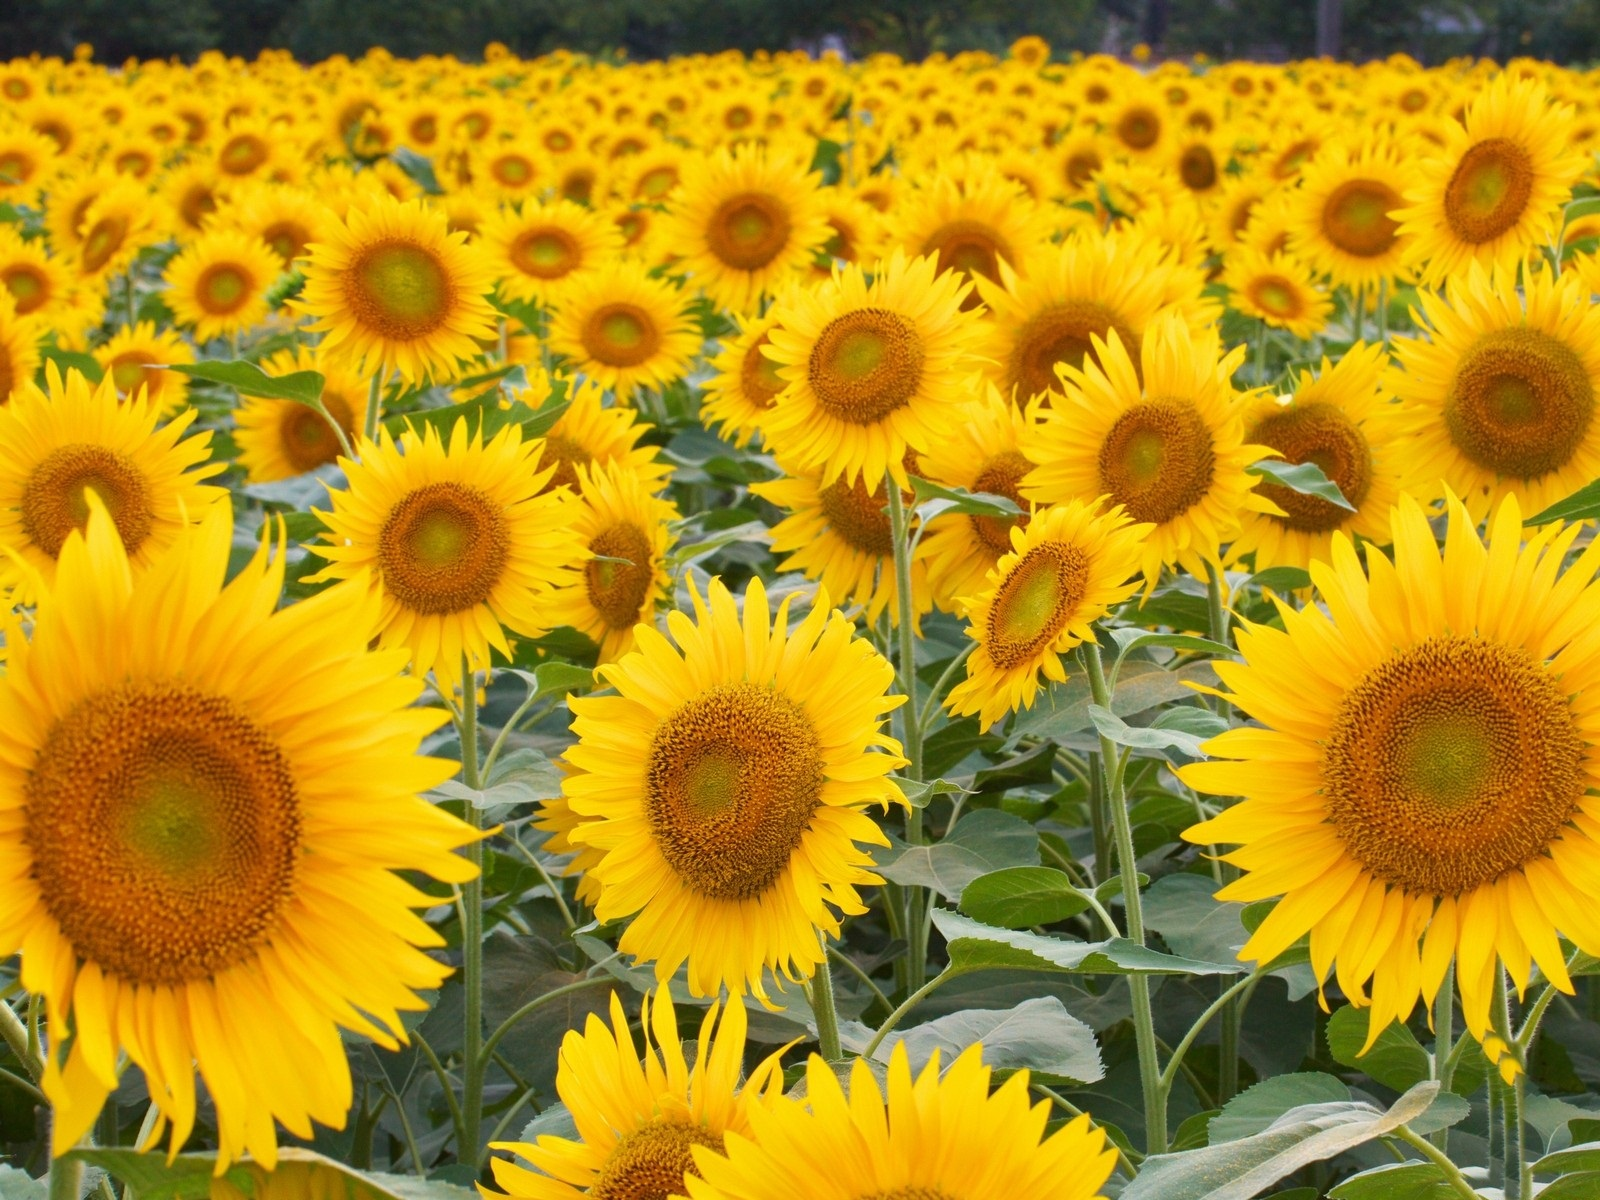 Field of Sunflowers wallpaper   ForWallpapercom 1600x1200